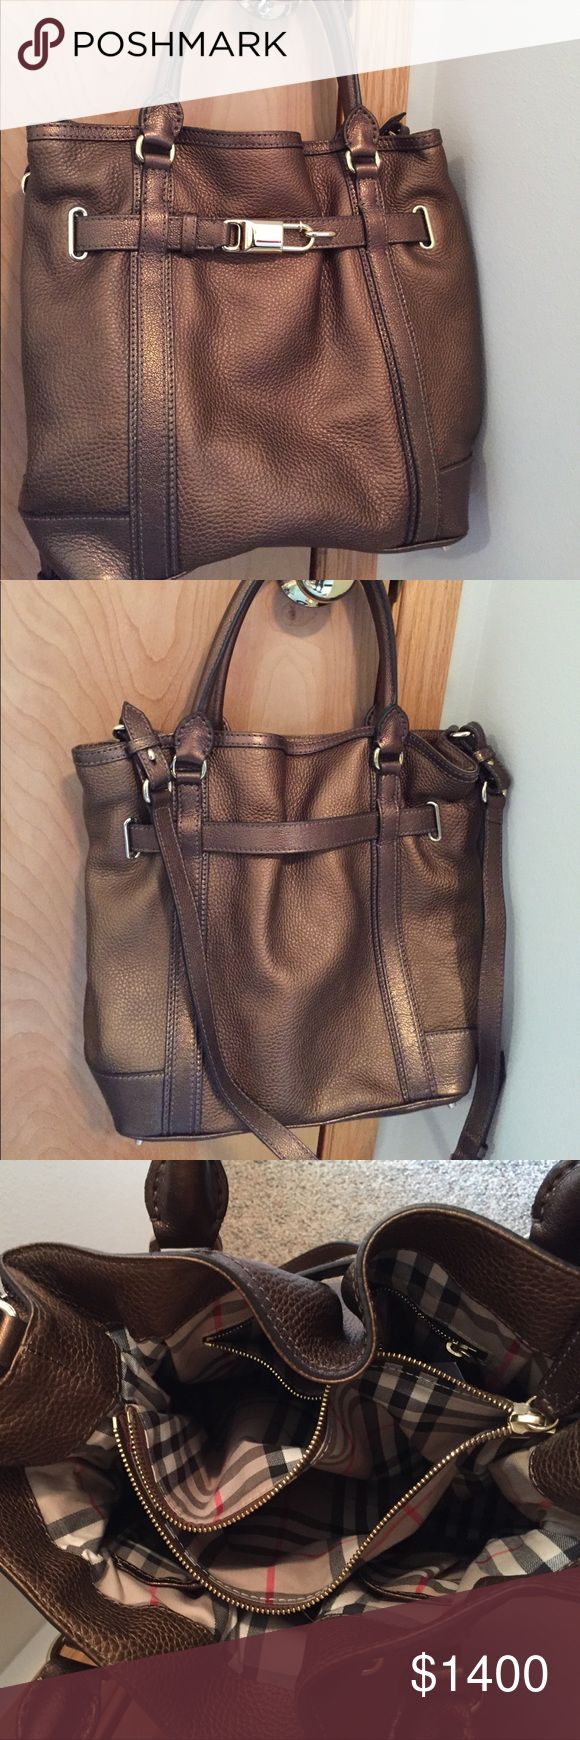 Burberry leather Antique Gold Medium Tote Burberry London Grainy Leather Medium Tote in Antique Gold Made in Italy. Middle has a zipper part. This is a beautiful handbag. Poshmark will authenticate. It has a crossbody strap as well as handles Burberry Bags Totes